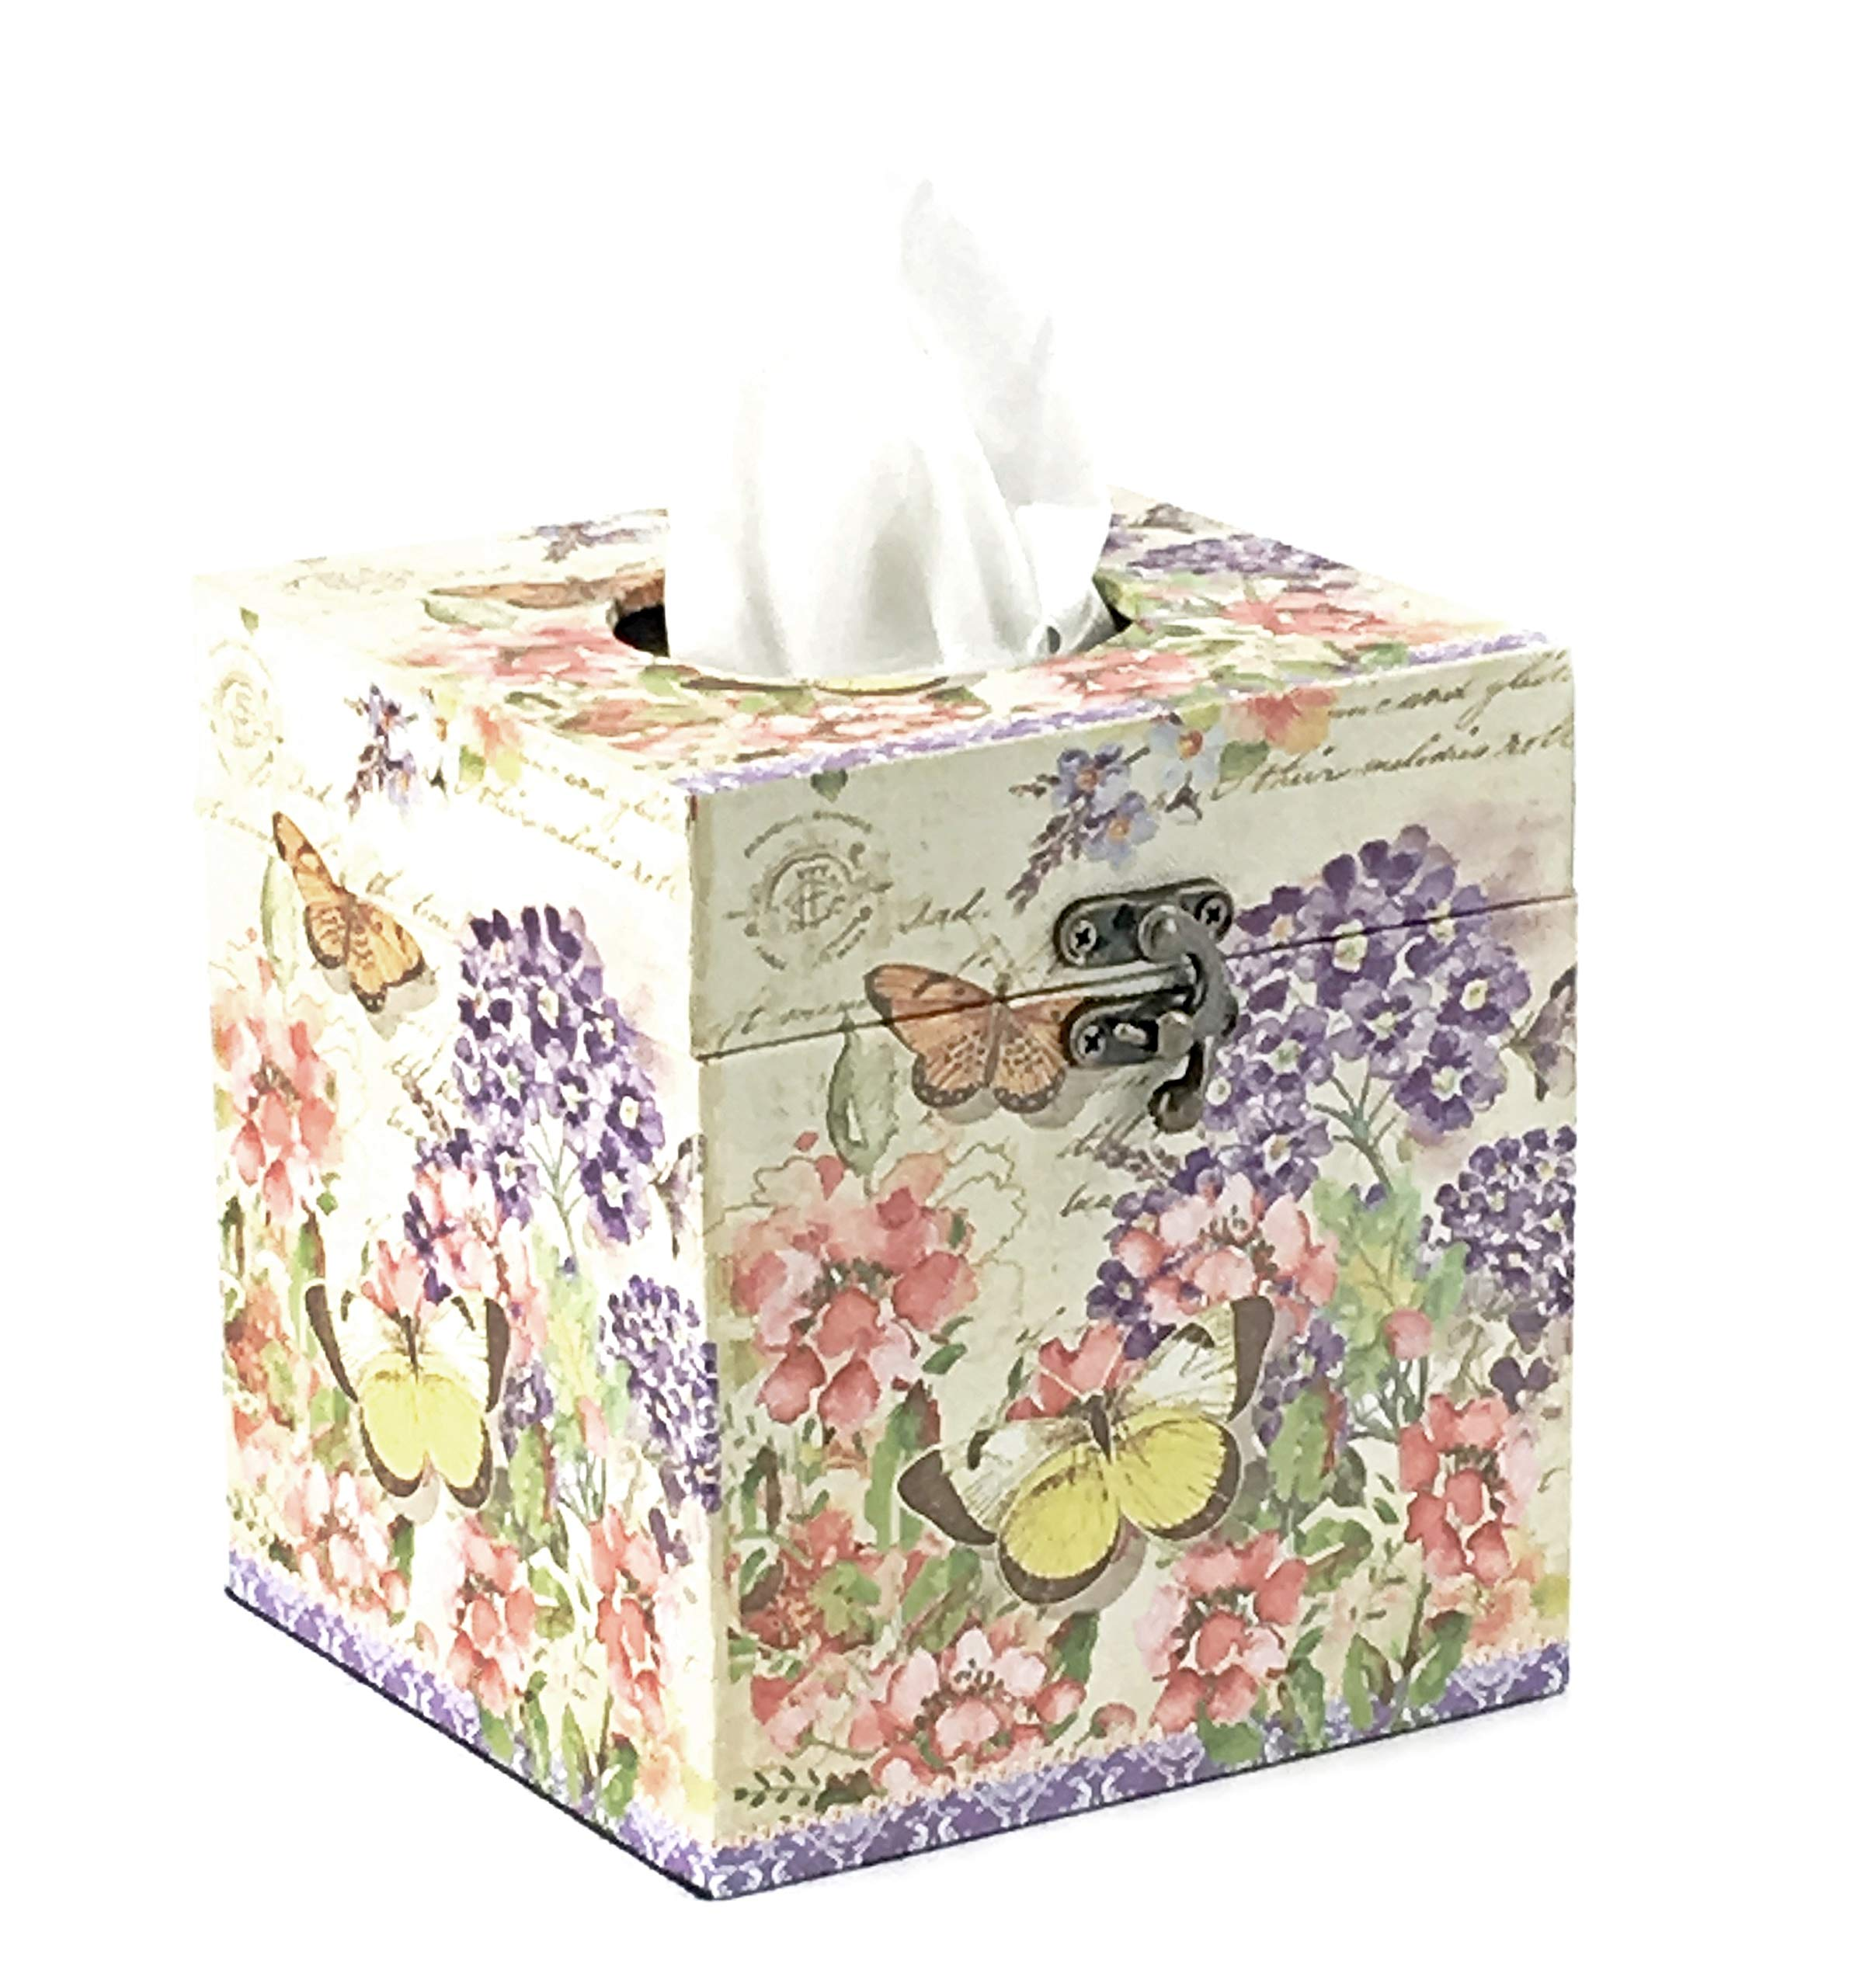 Bellaa 28311 Square Tissue Box Holder Butterfly Cover Wood 6inch by Bellaa